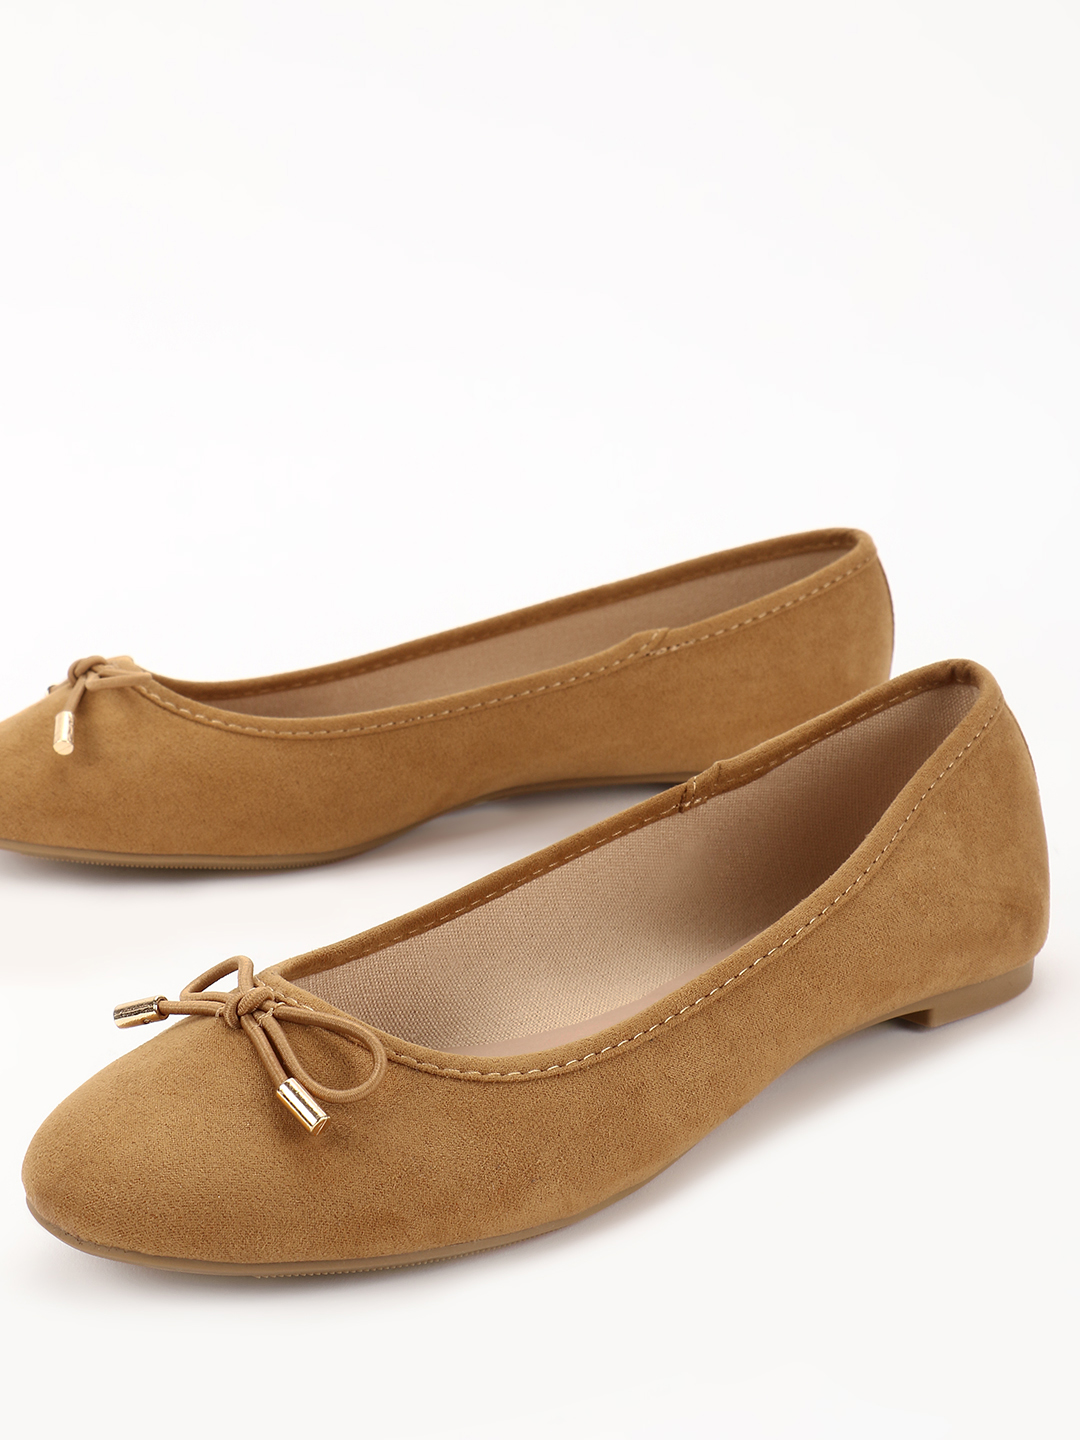 New Look Brown Suede Bow Detail Ballerinas 1